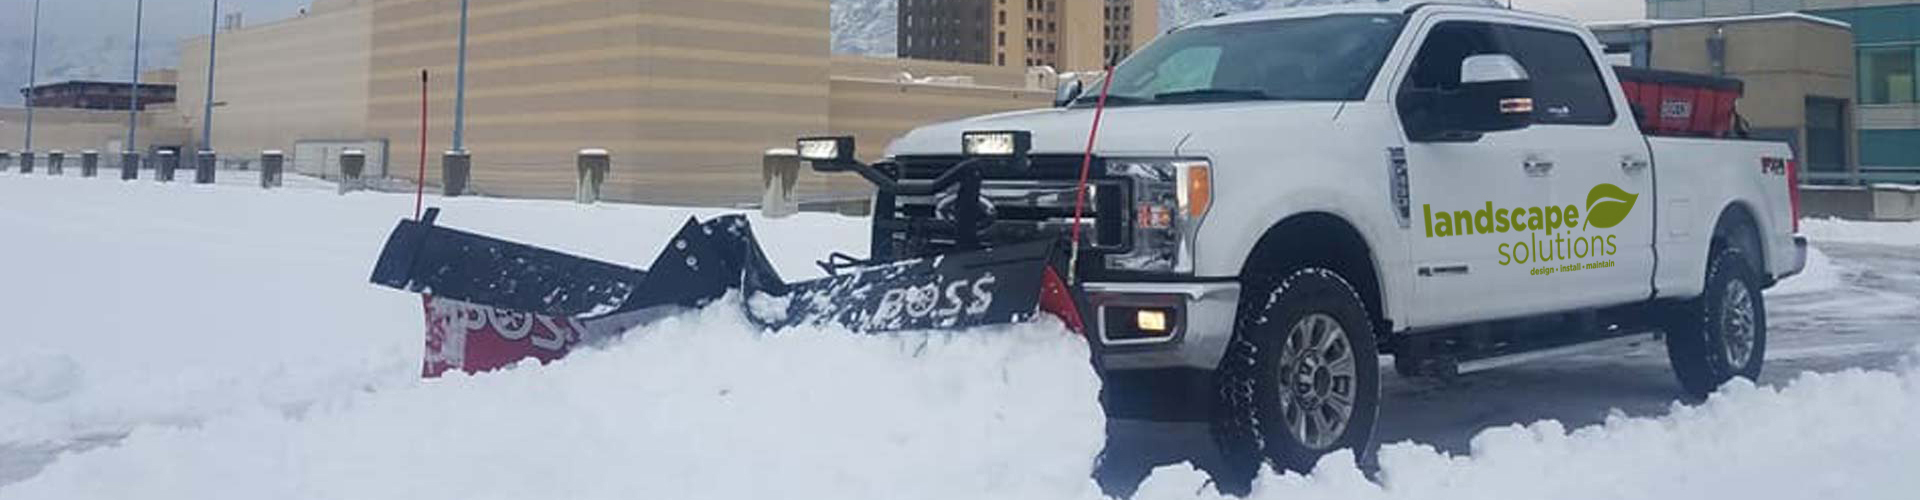 Our snow plow clearing a commercial parking lot in Salt Lake City.